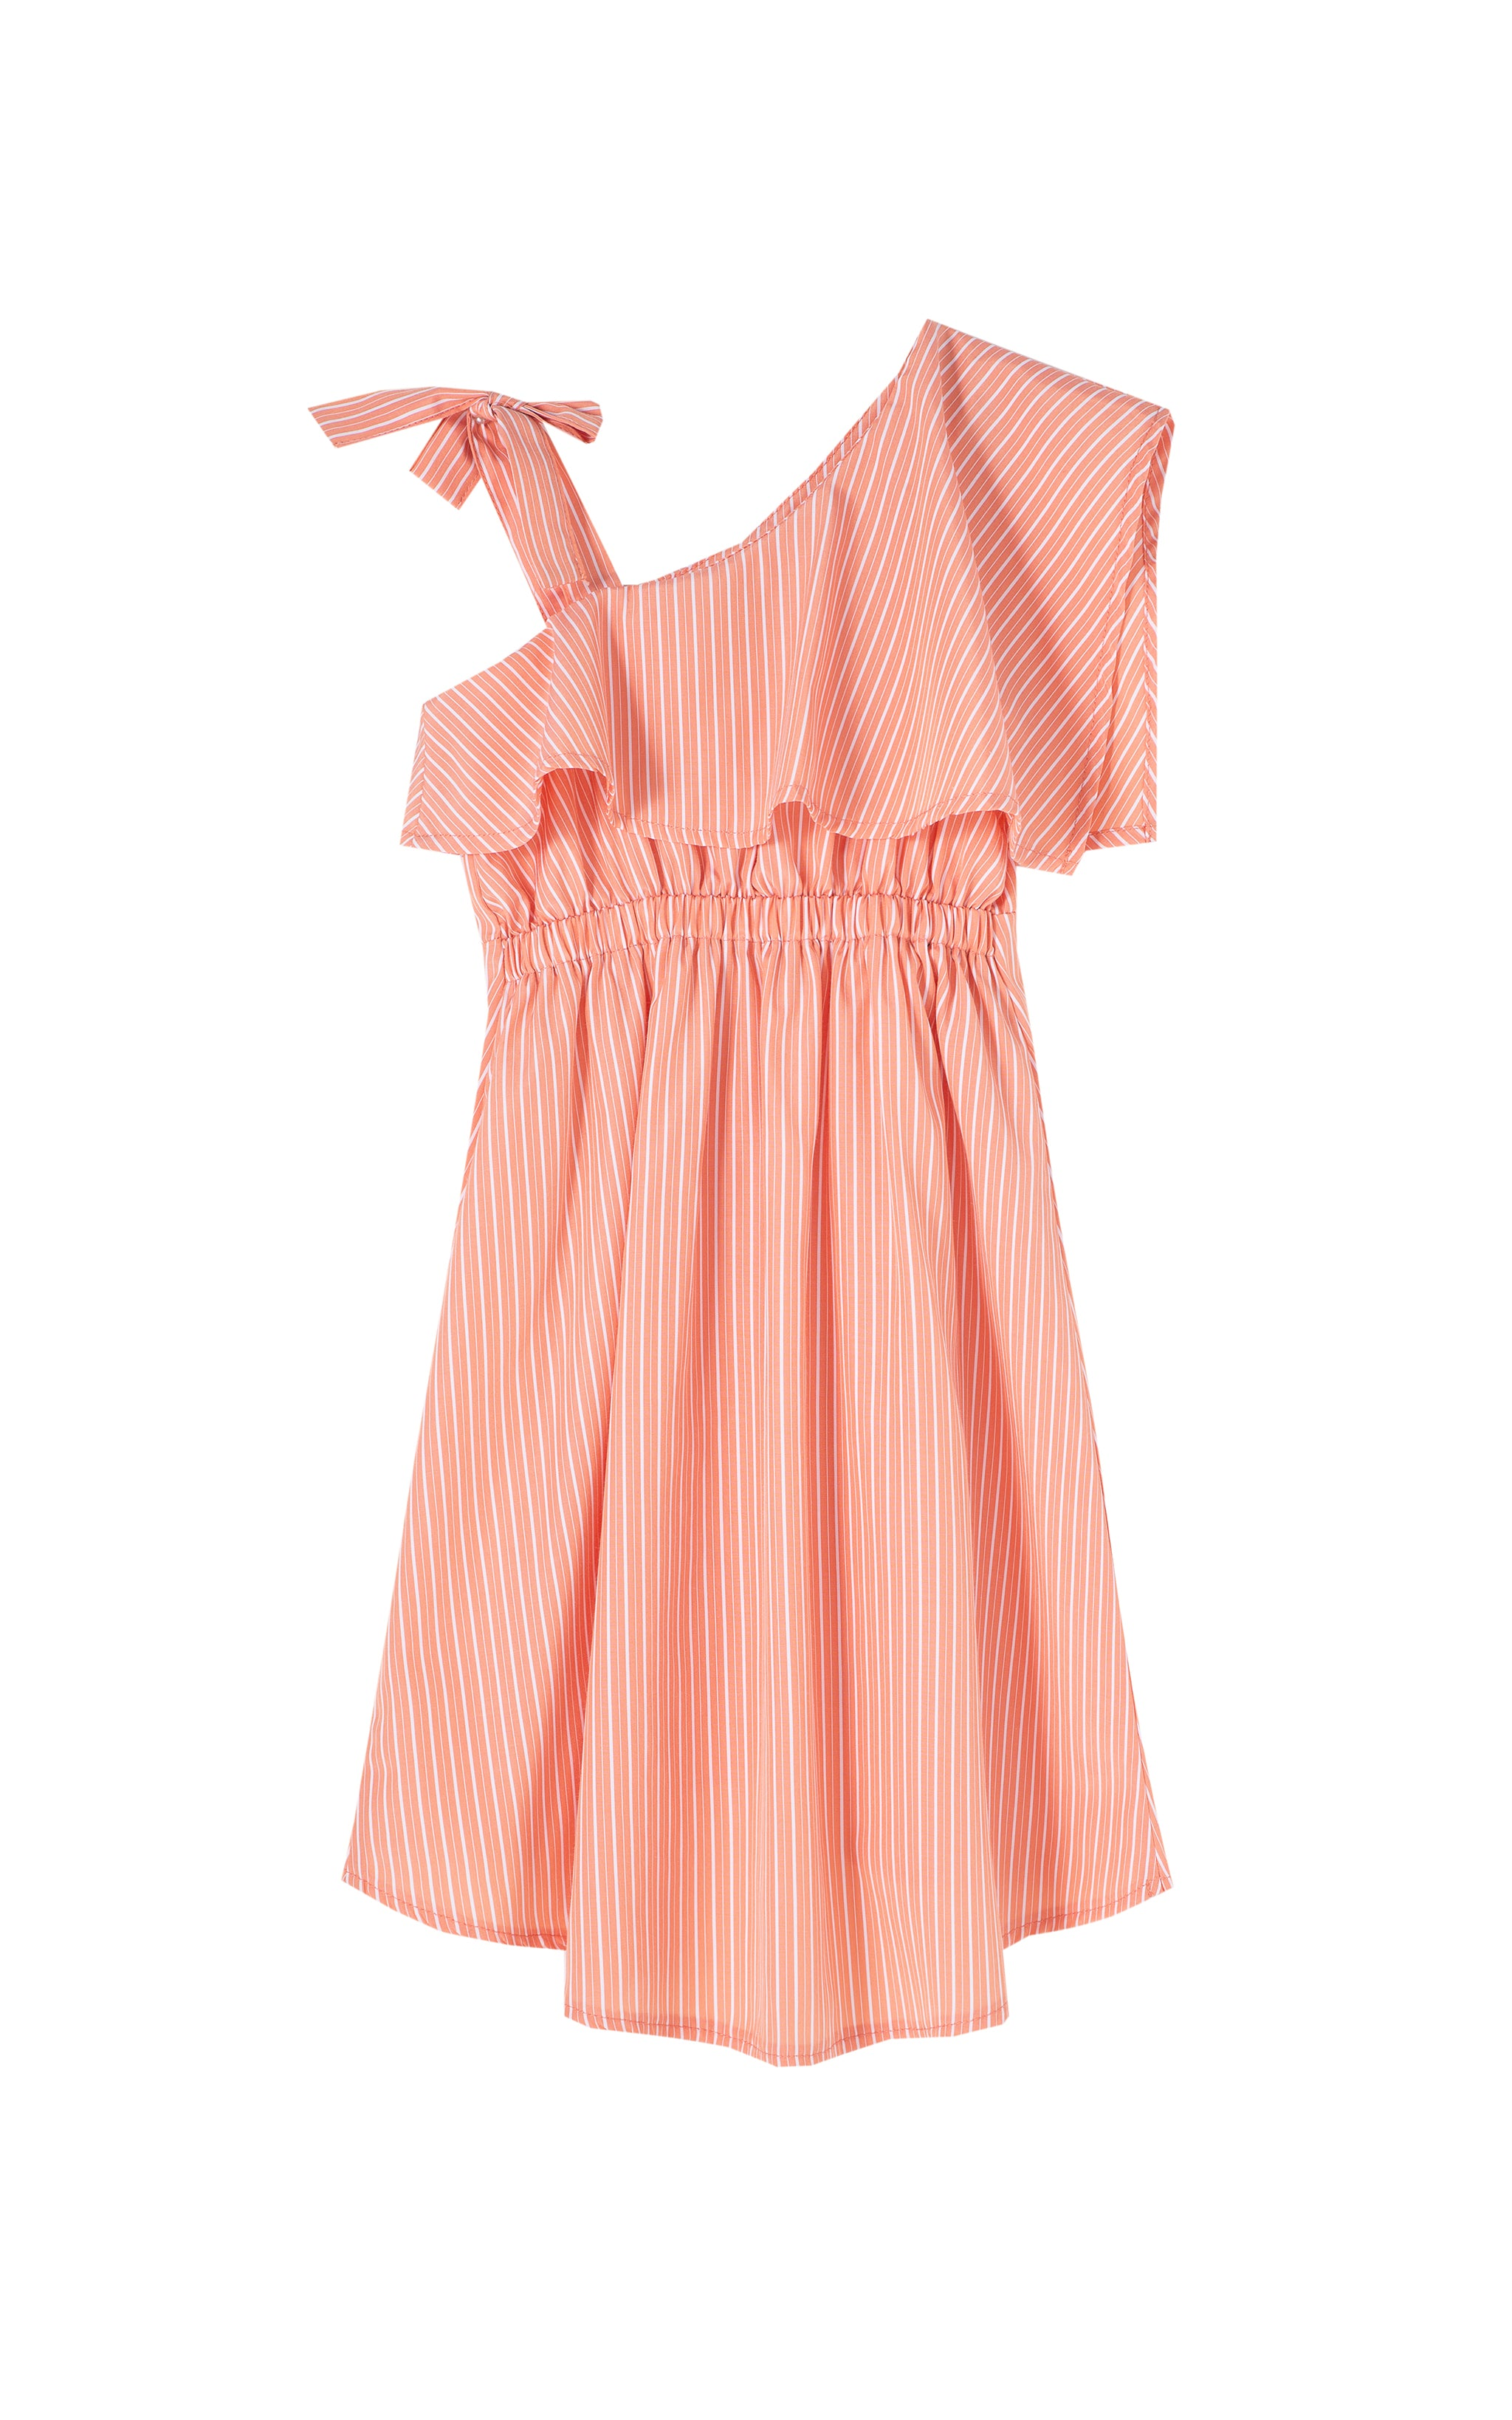 Asymmetrical High Low Dress | 2-4T